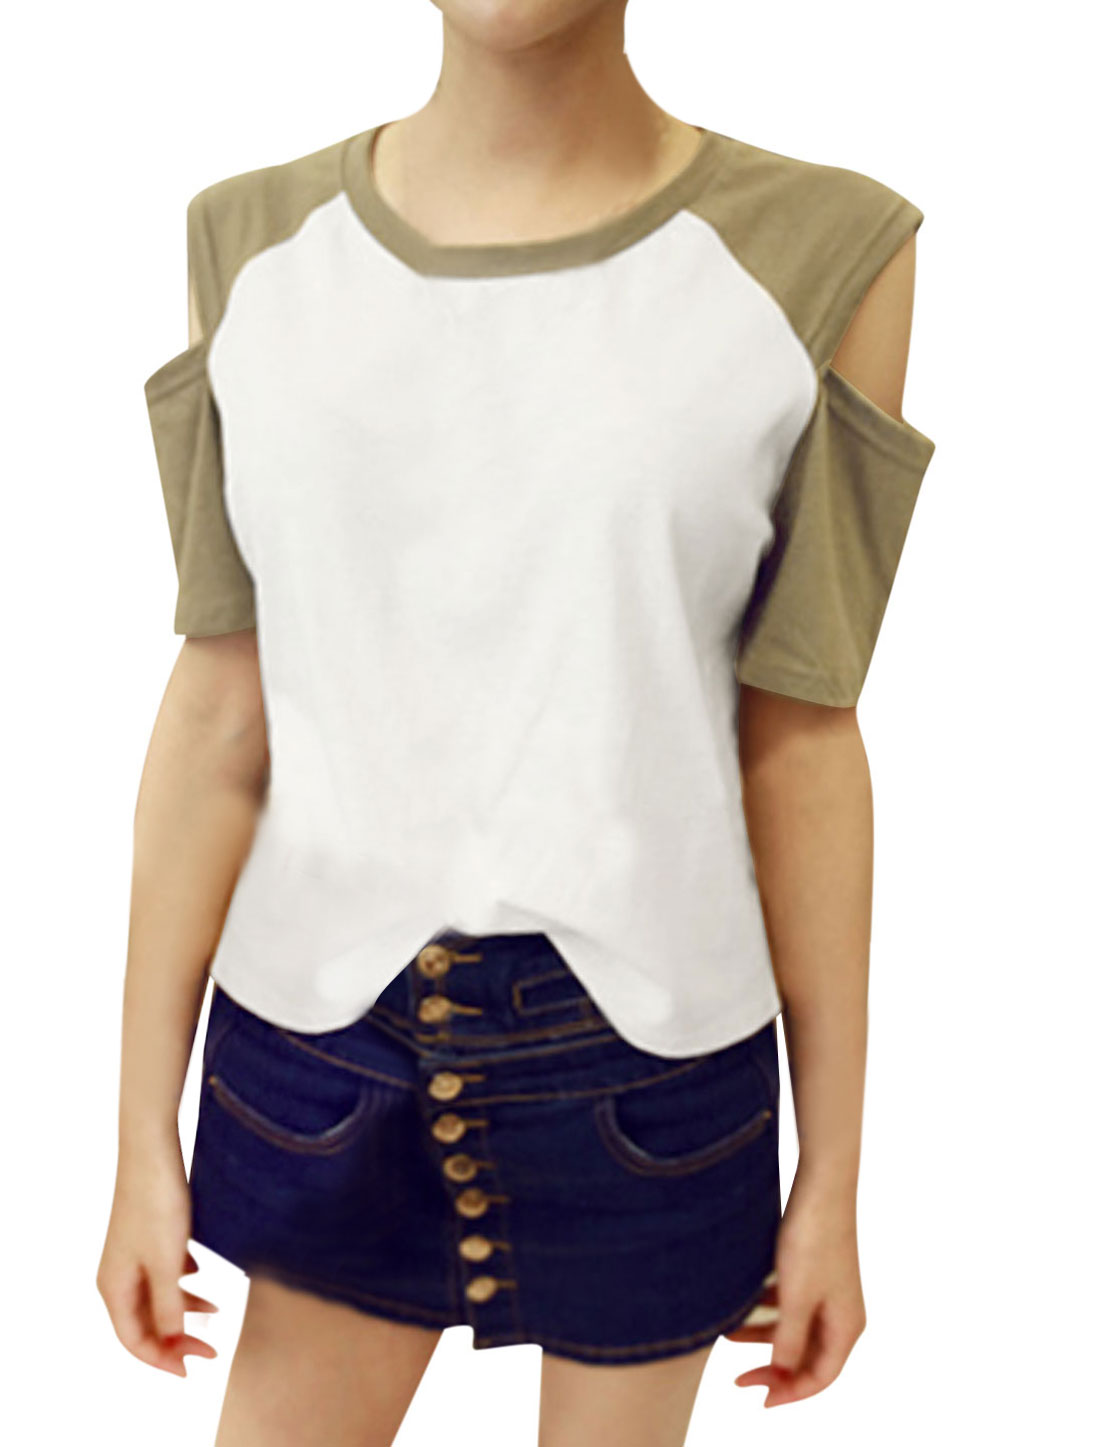 Lady Short Sleeve Round Neck Cut Out Shoulder Tee Shirt Army Green White S